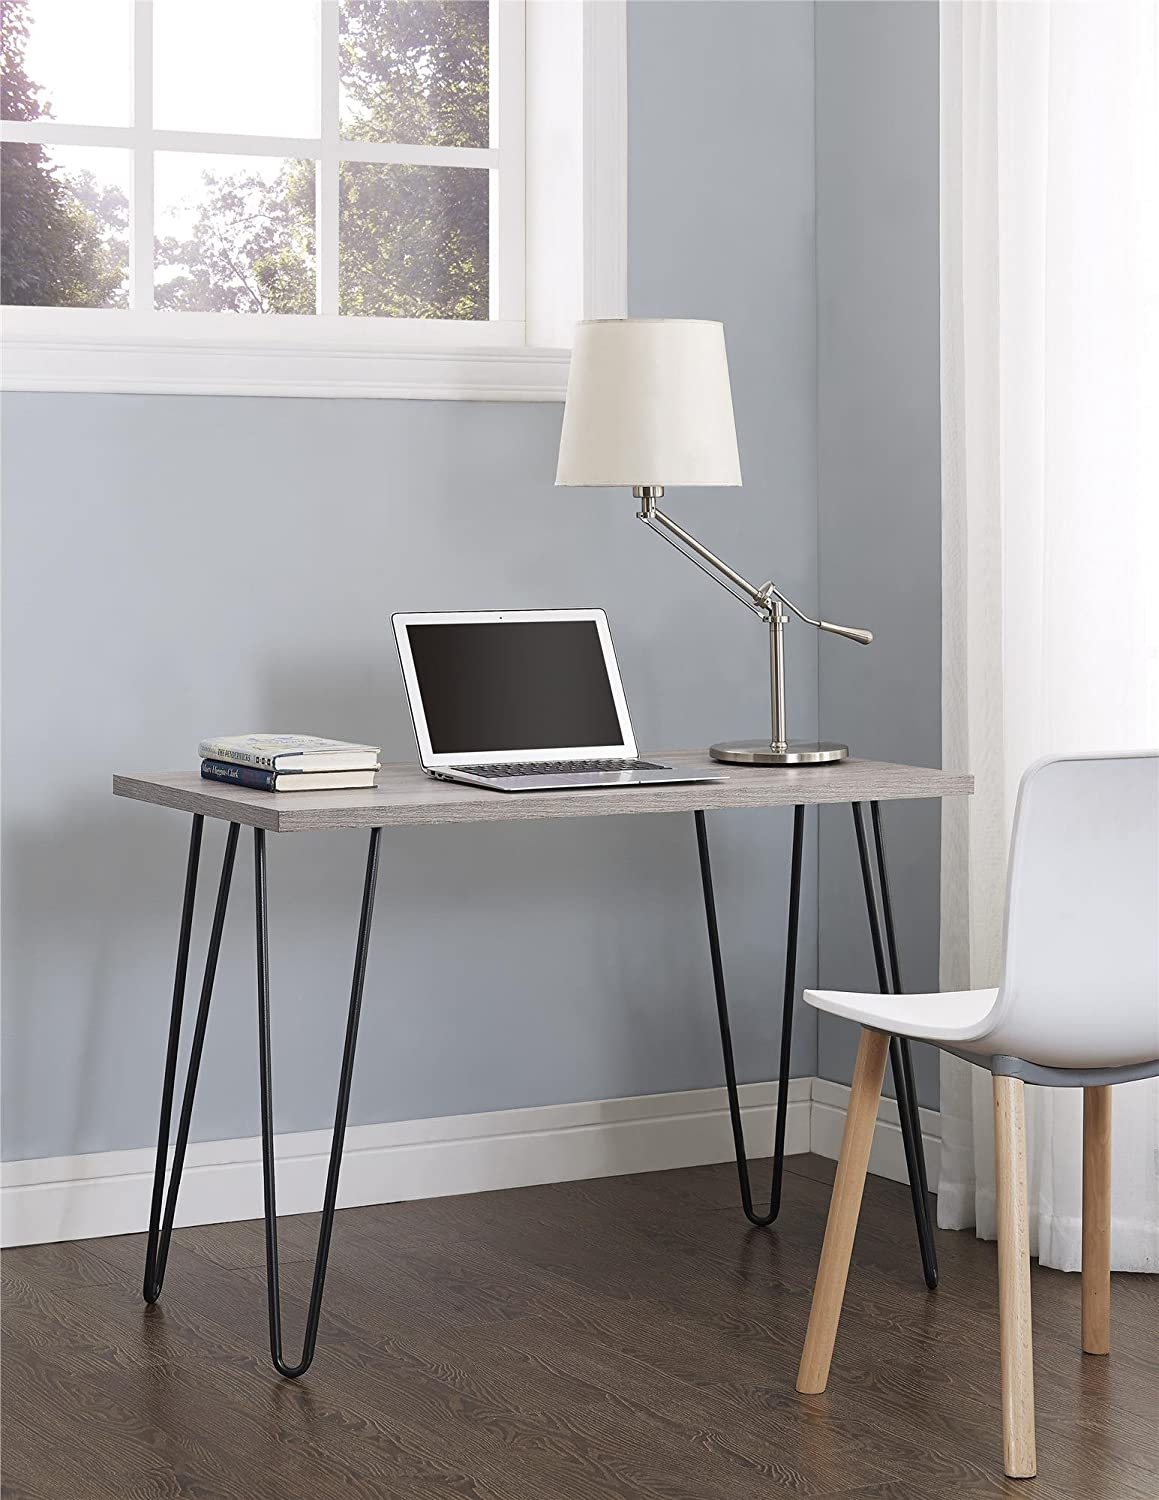 desk with hair pin legs